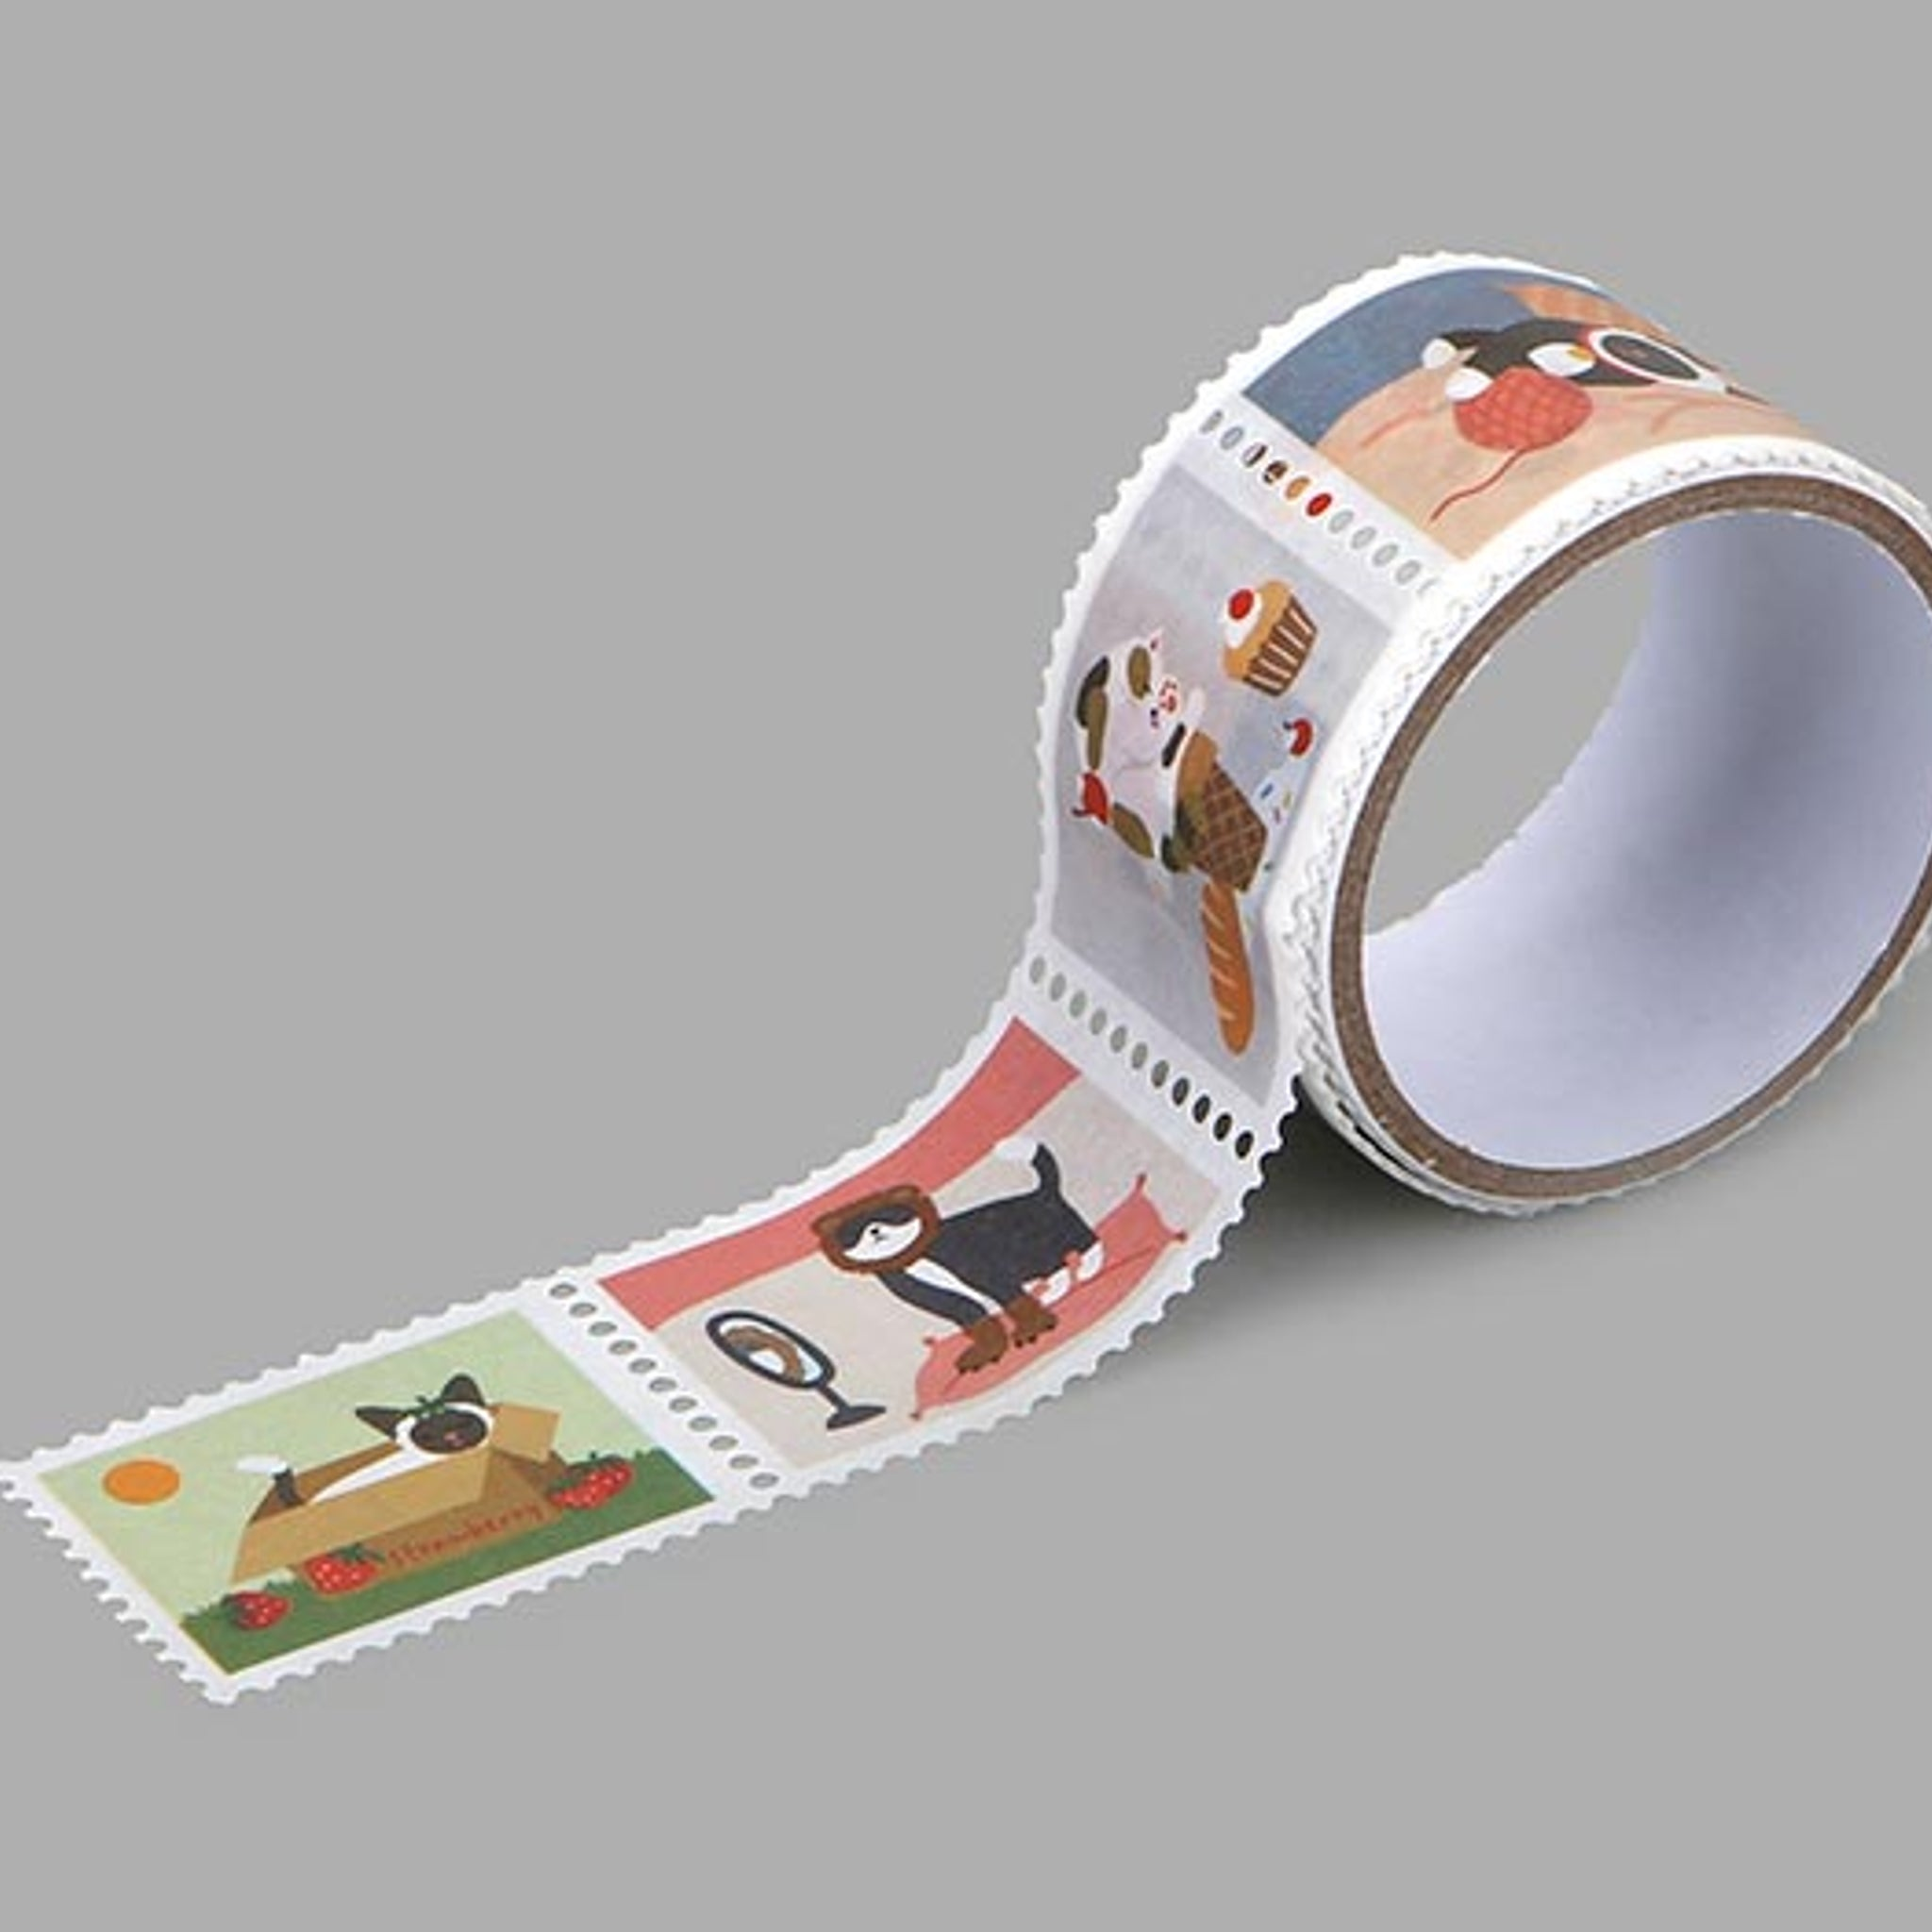 Dailylike Daily cats Stamp Masking Tape